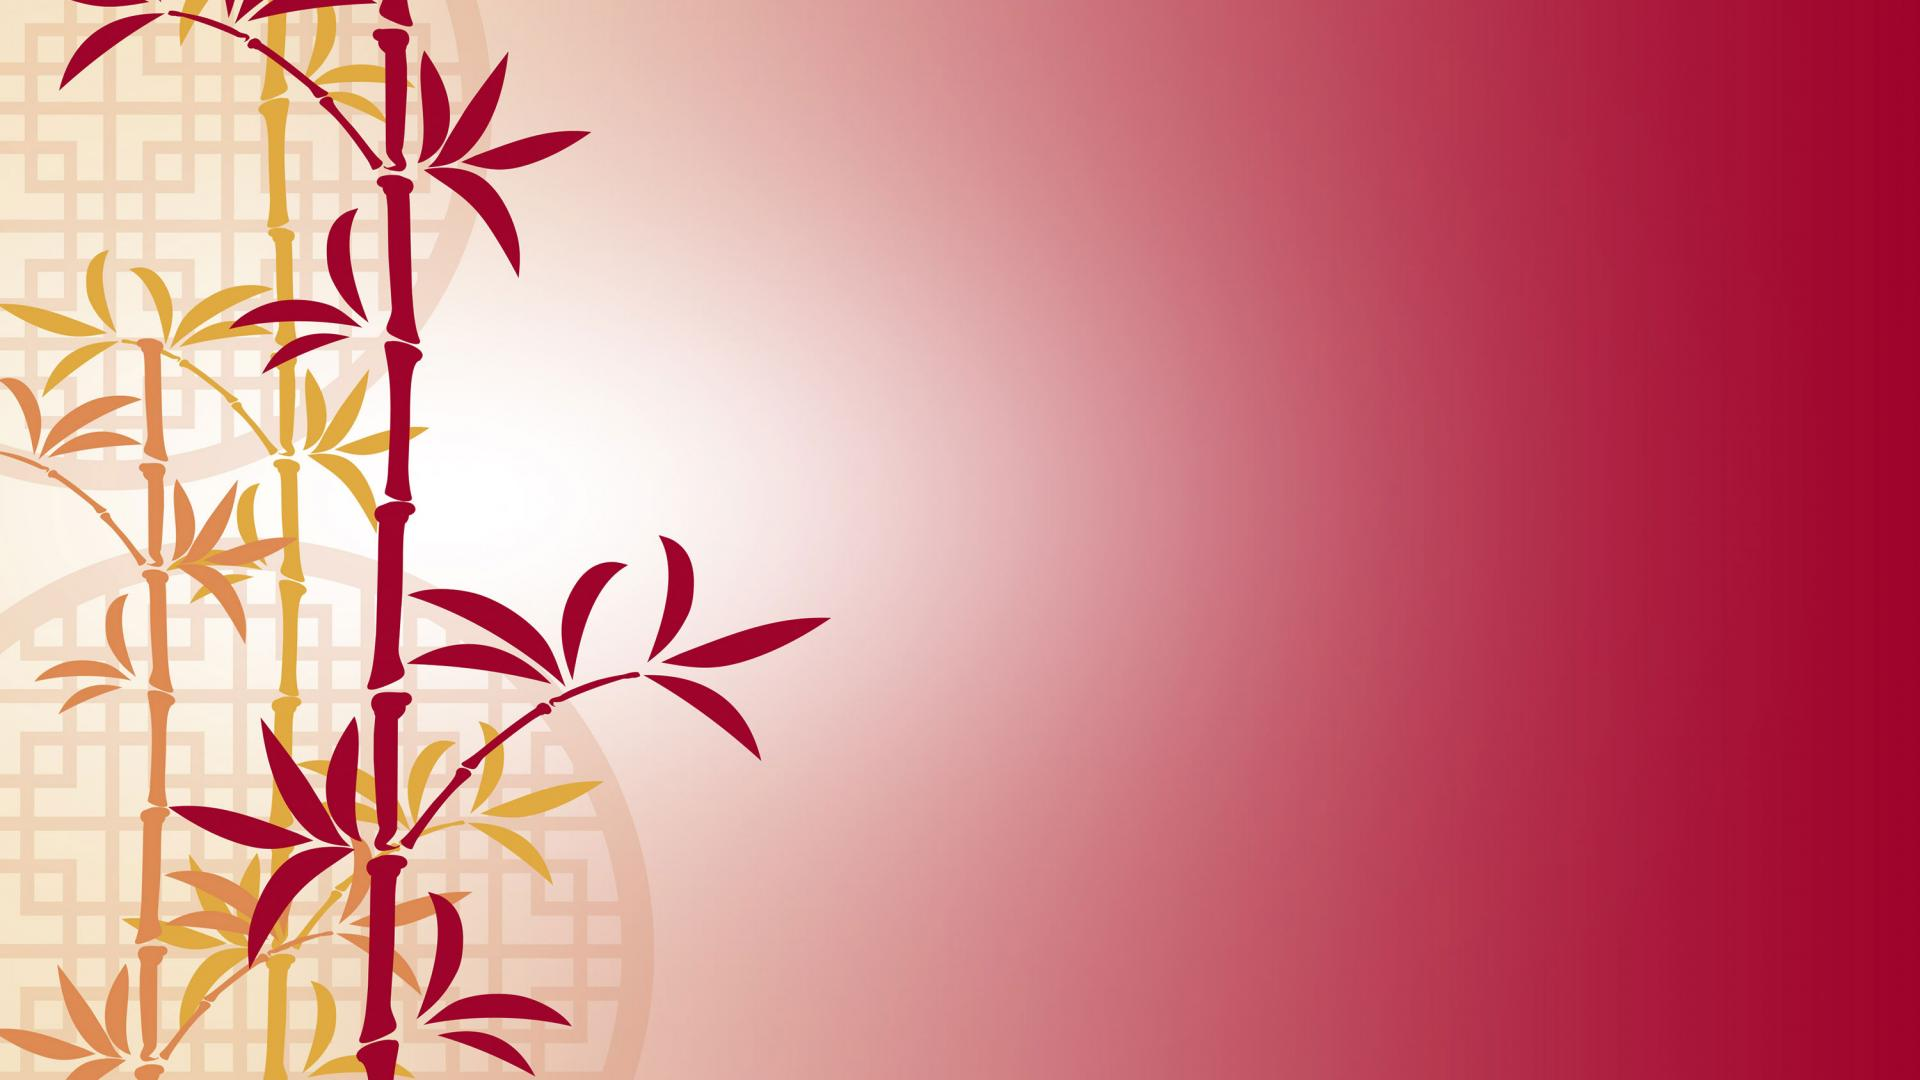 hd wallpaper background for chinese new year card | hd wallpapers